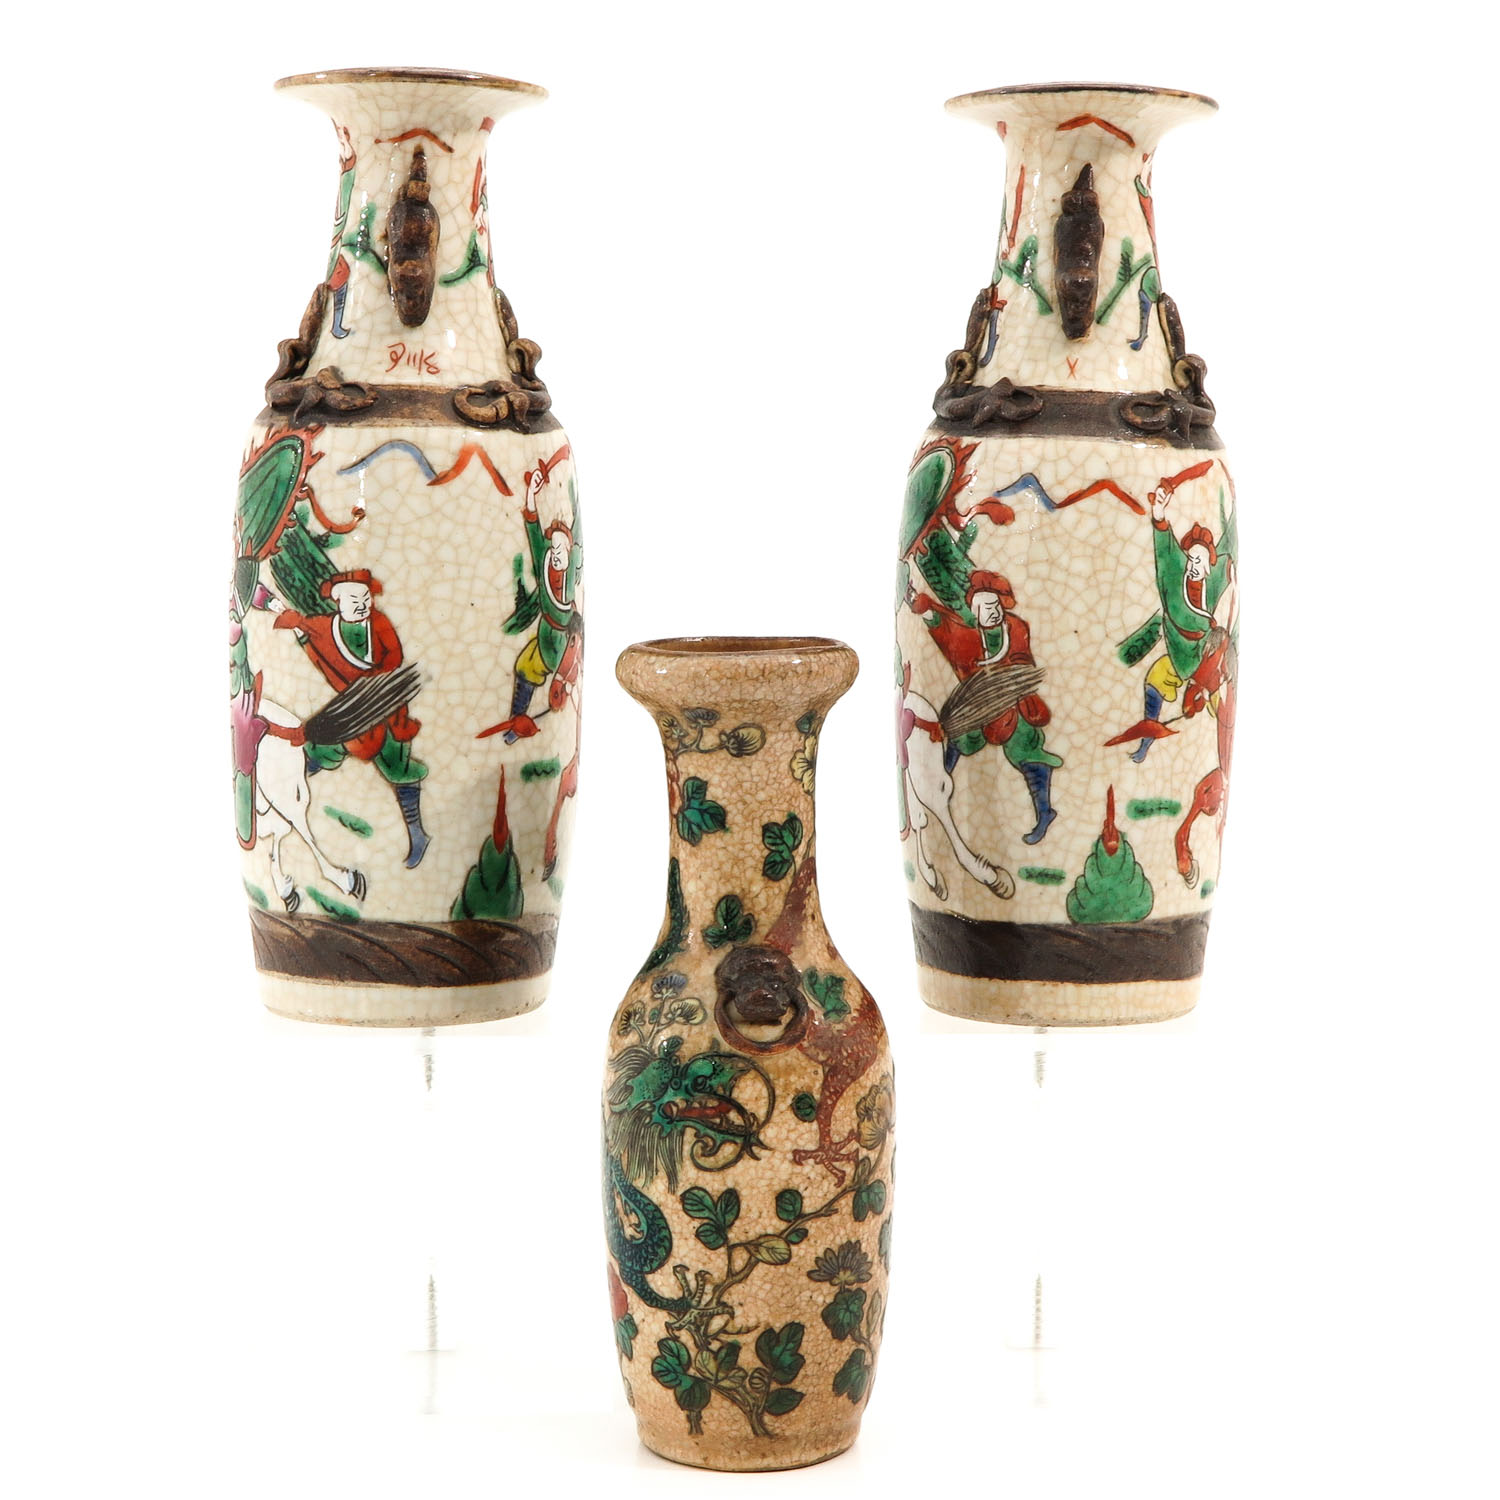 A Collection of 3 Nanking Vases - Image 4 of 9